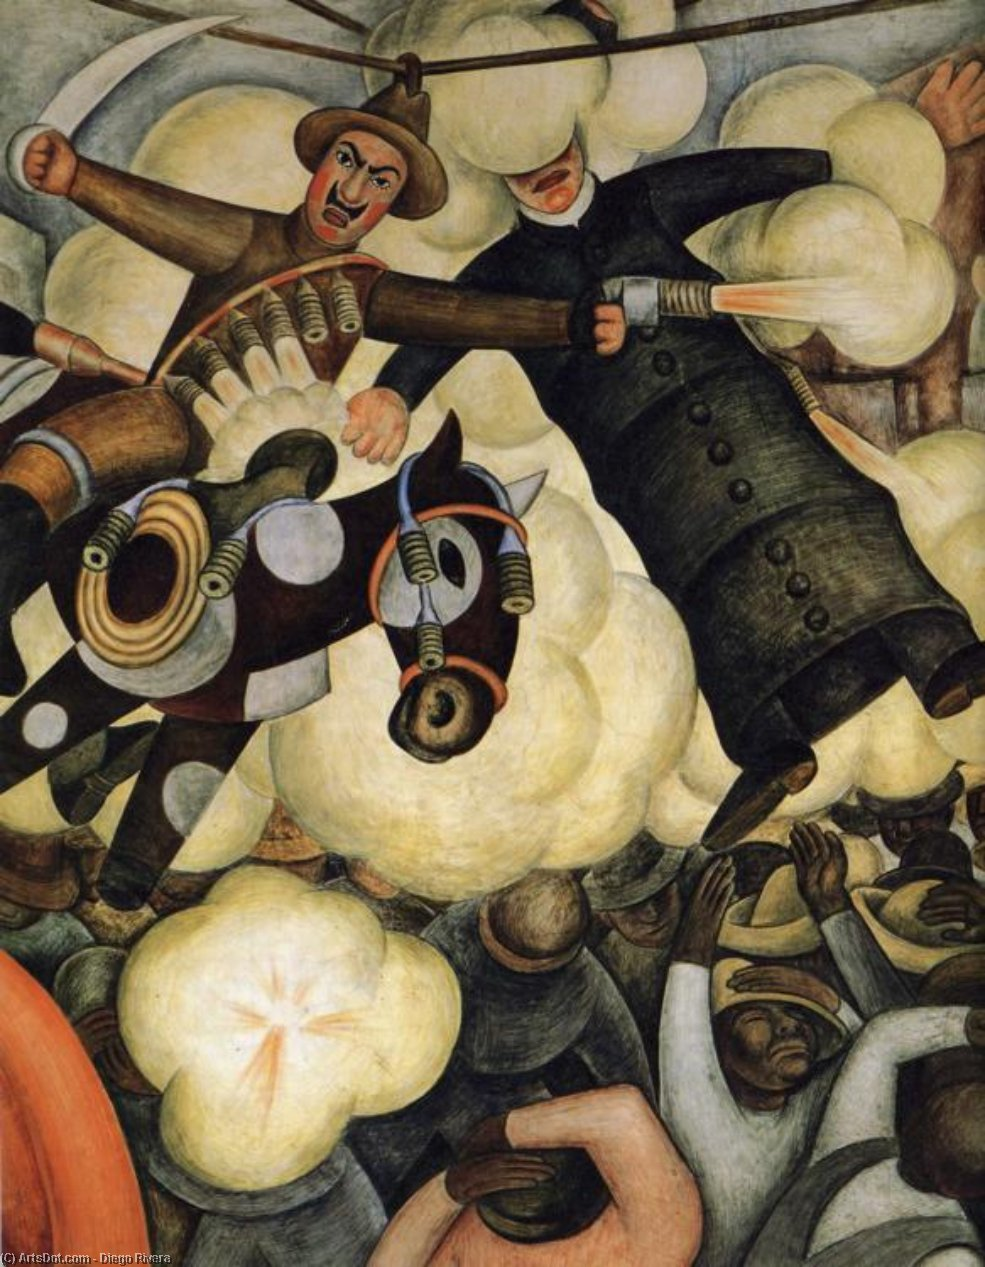 The Burning of the Judases, Oil by Diego Rivera (1886-1957, Mexico)